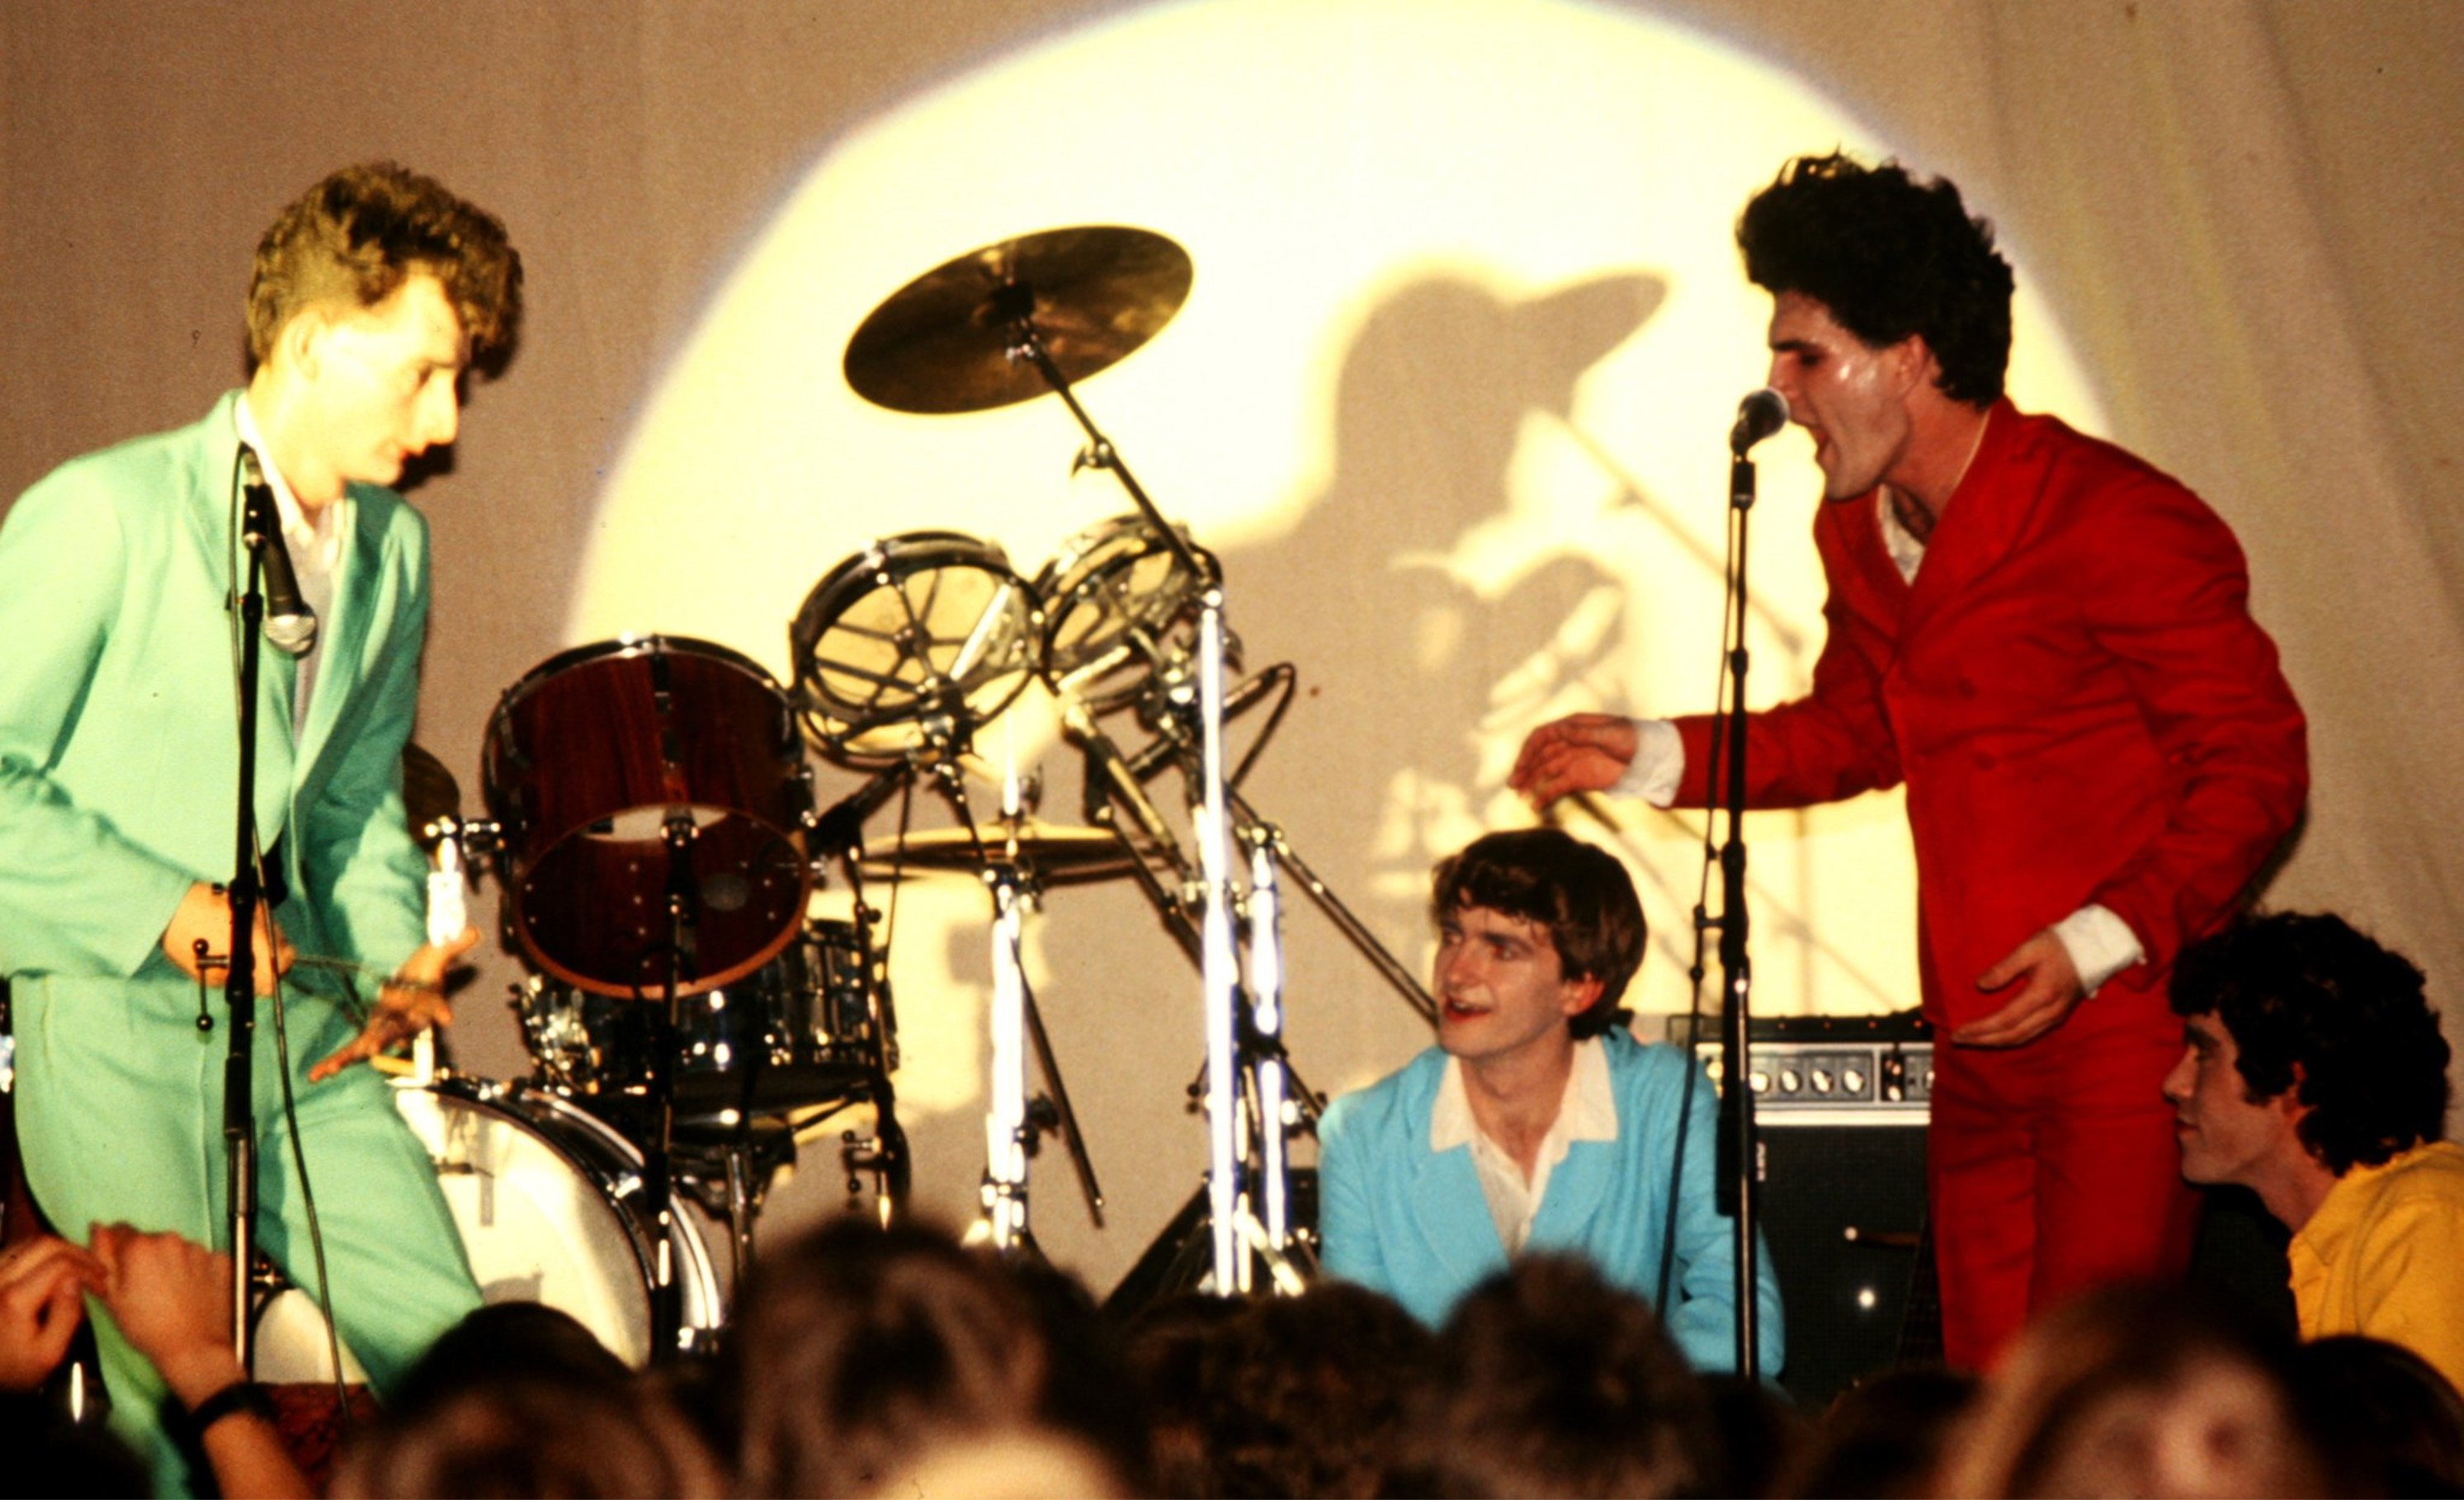 Split Enz at uea in 1980